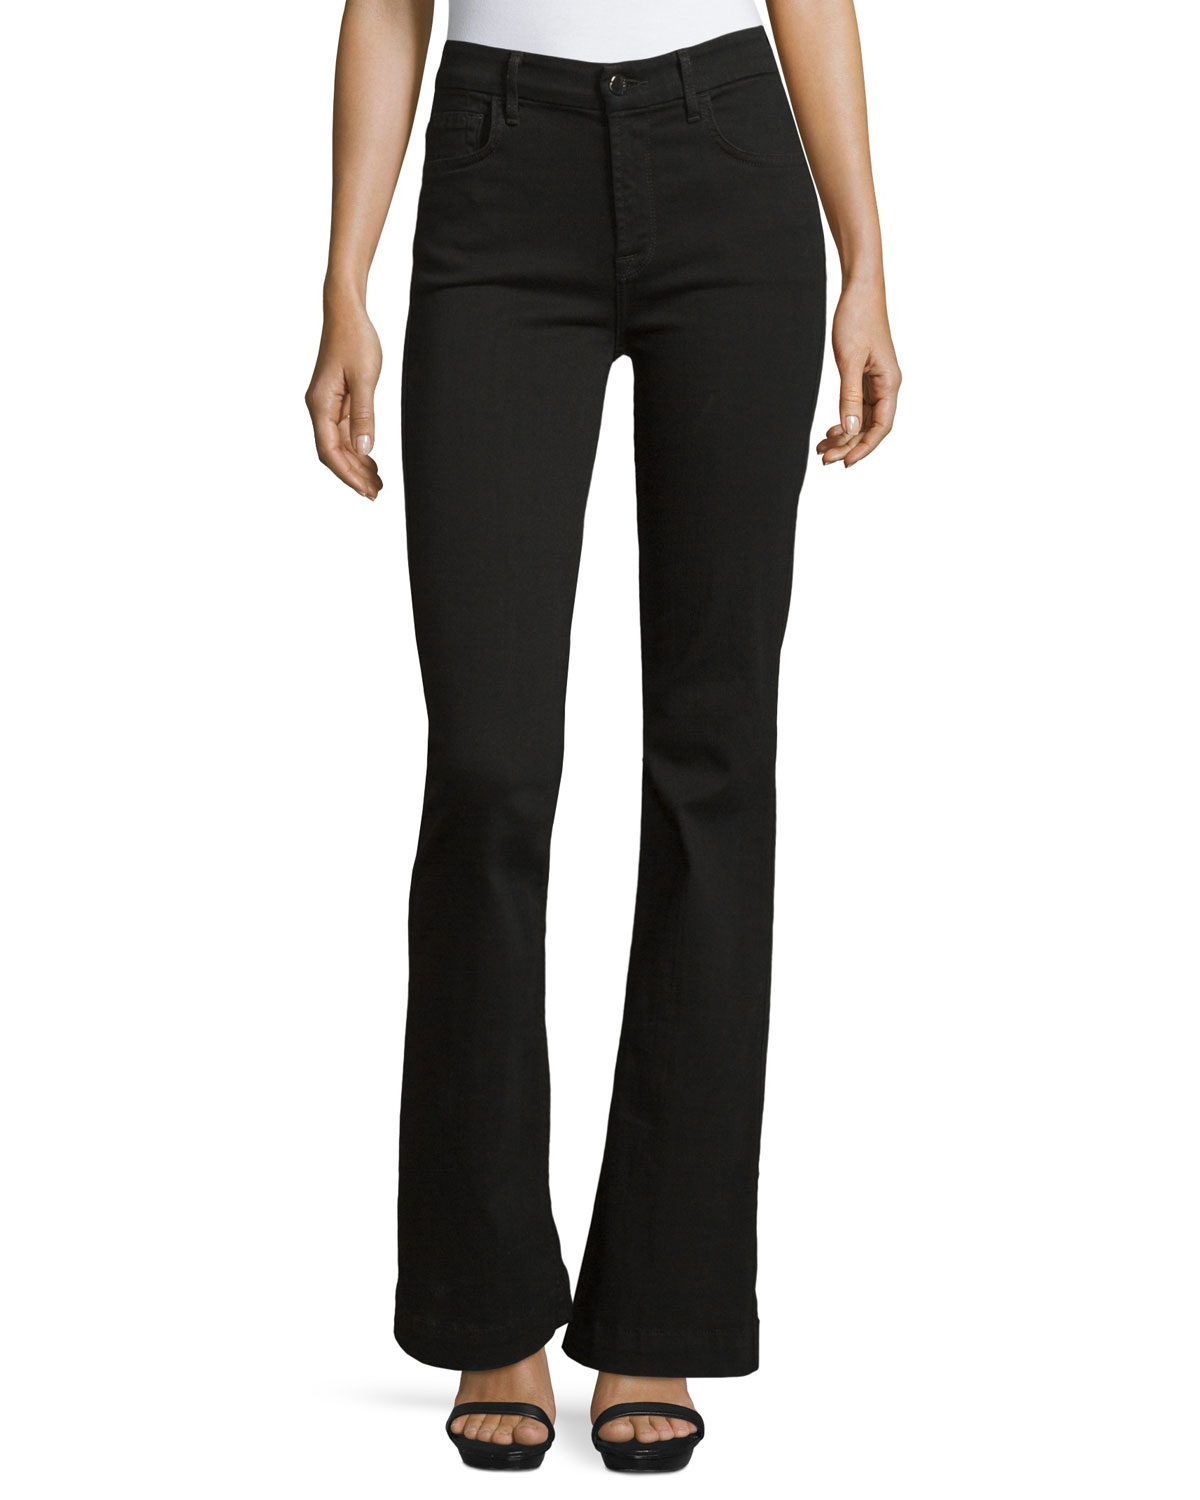 Jen7 Denim Trouser Flare Jeans in Black | Lyst